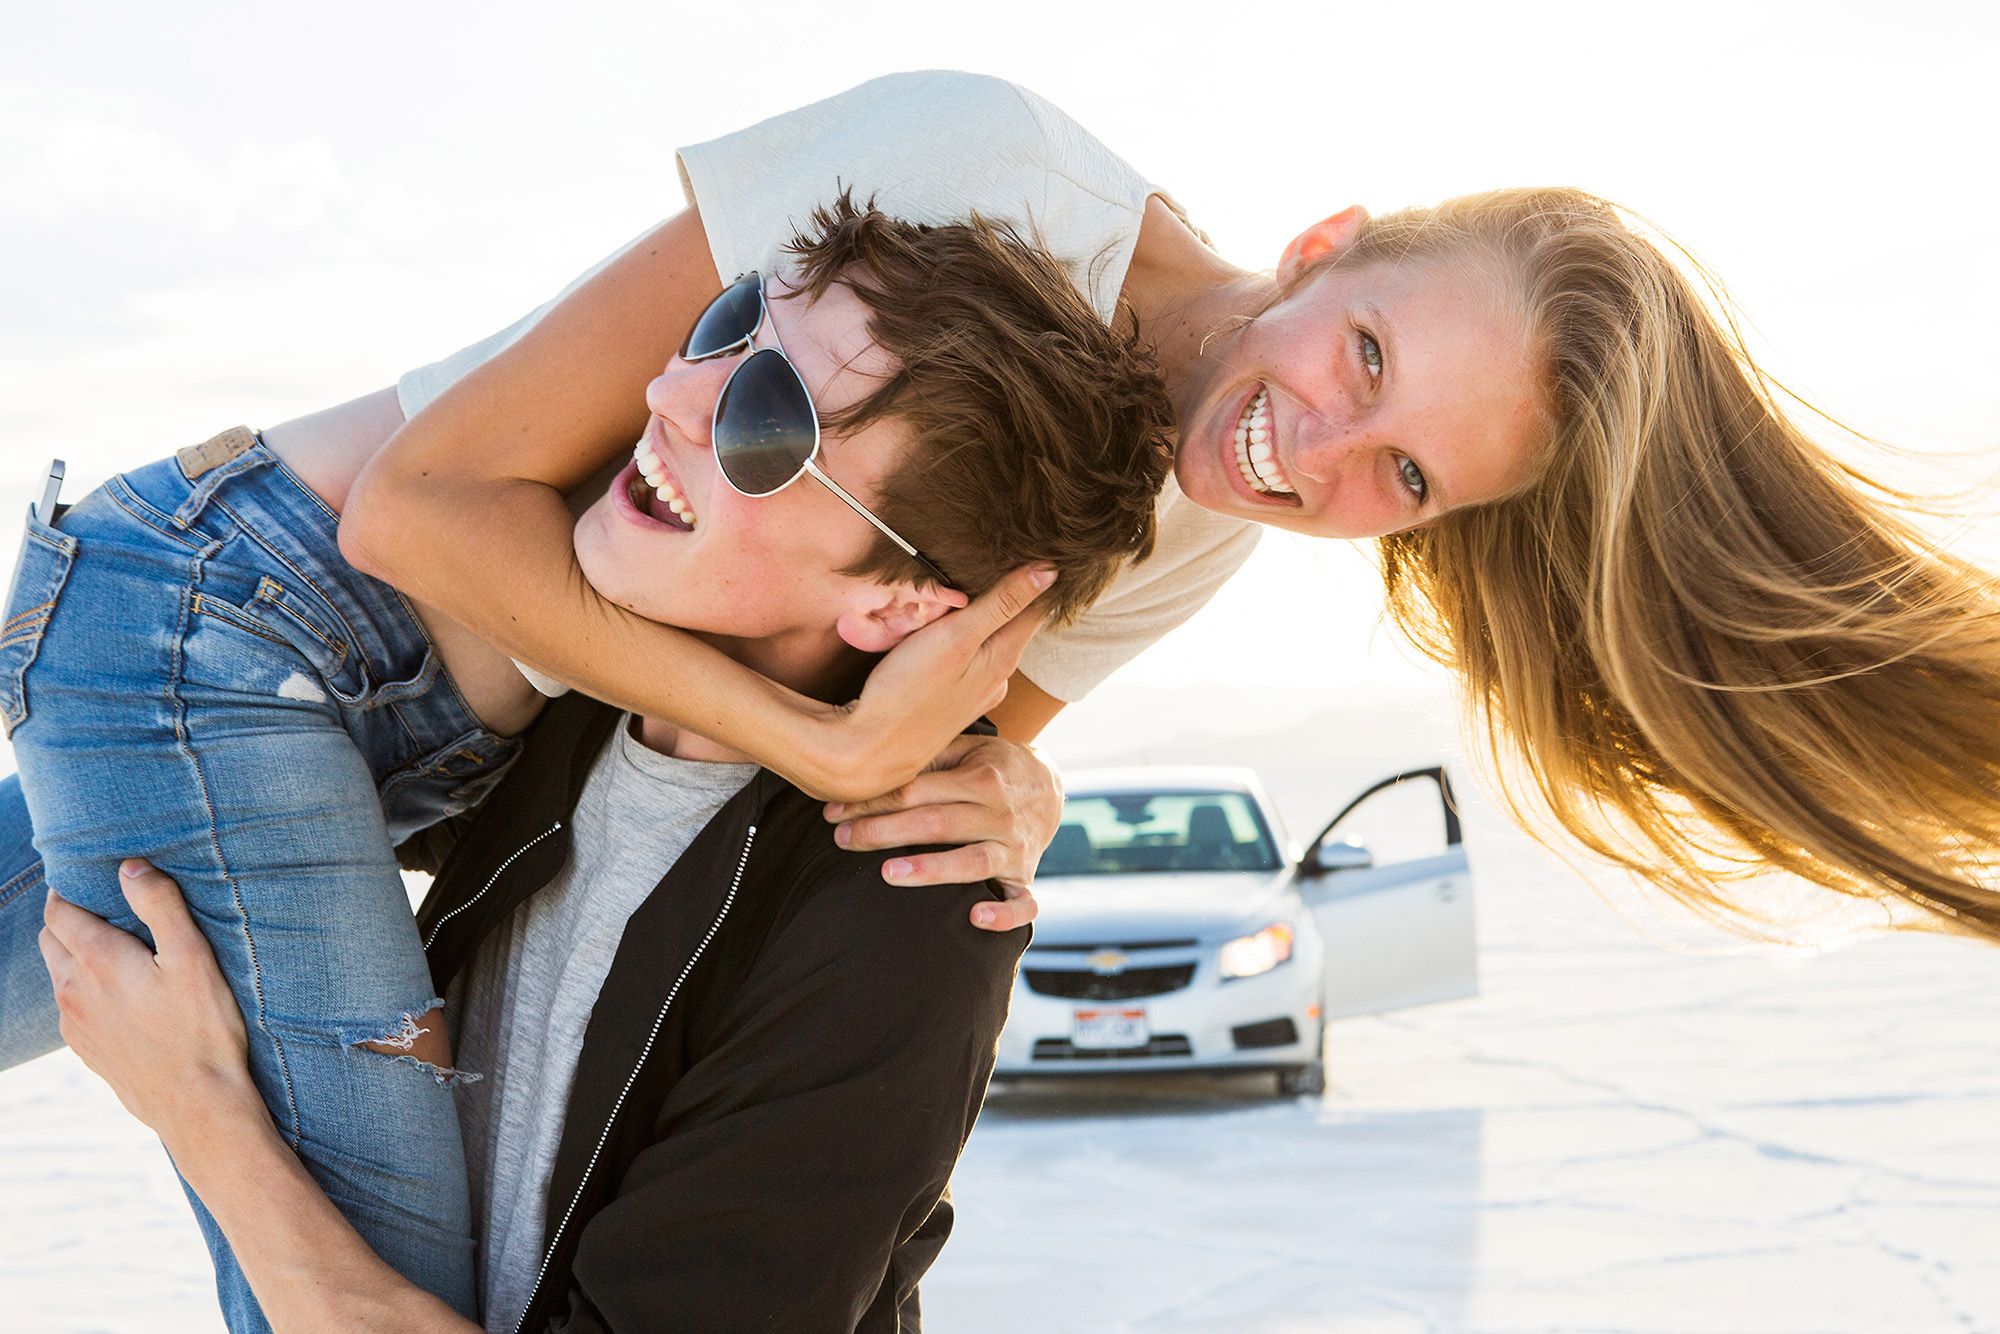 Chad_Riley_lifestyle-CARLY_&_DYLAN_UTAH_SALT_FLATS_2872